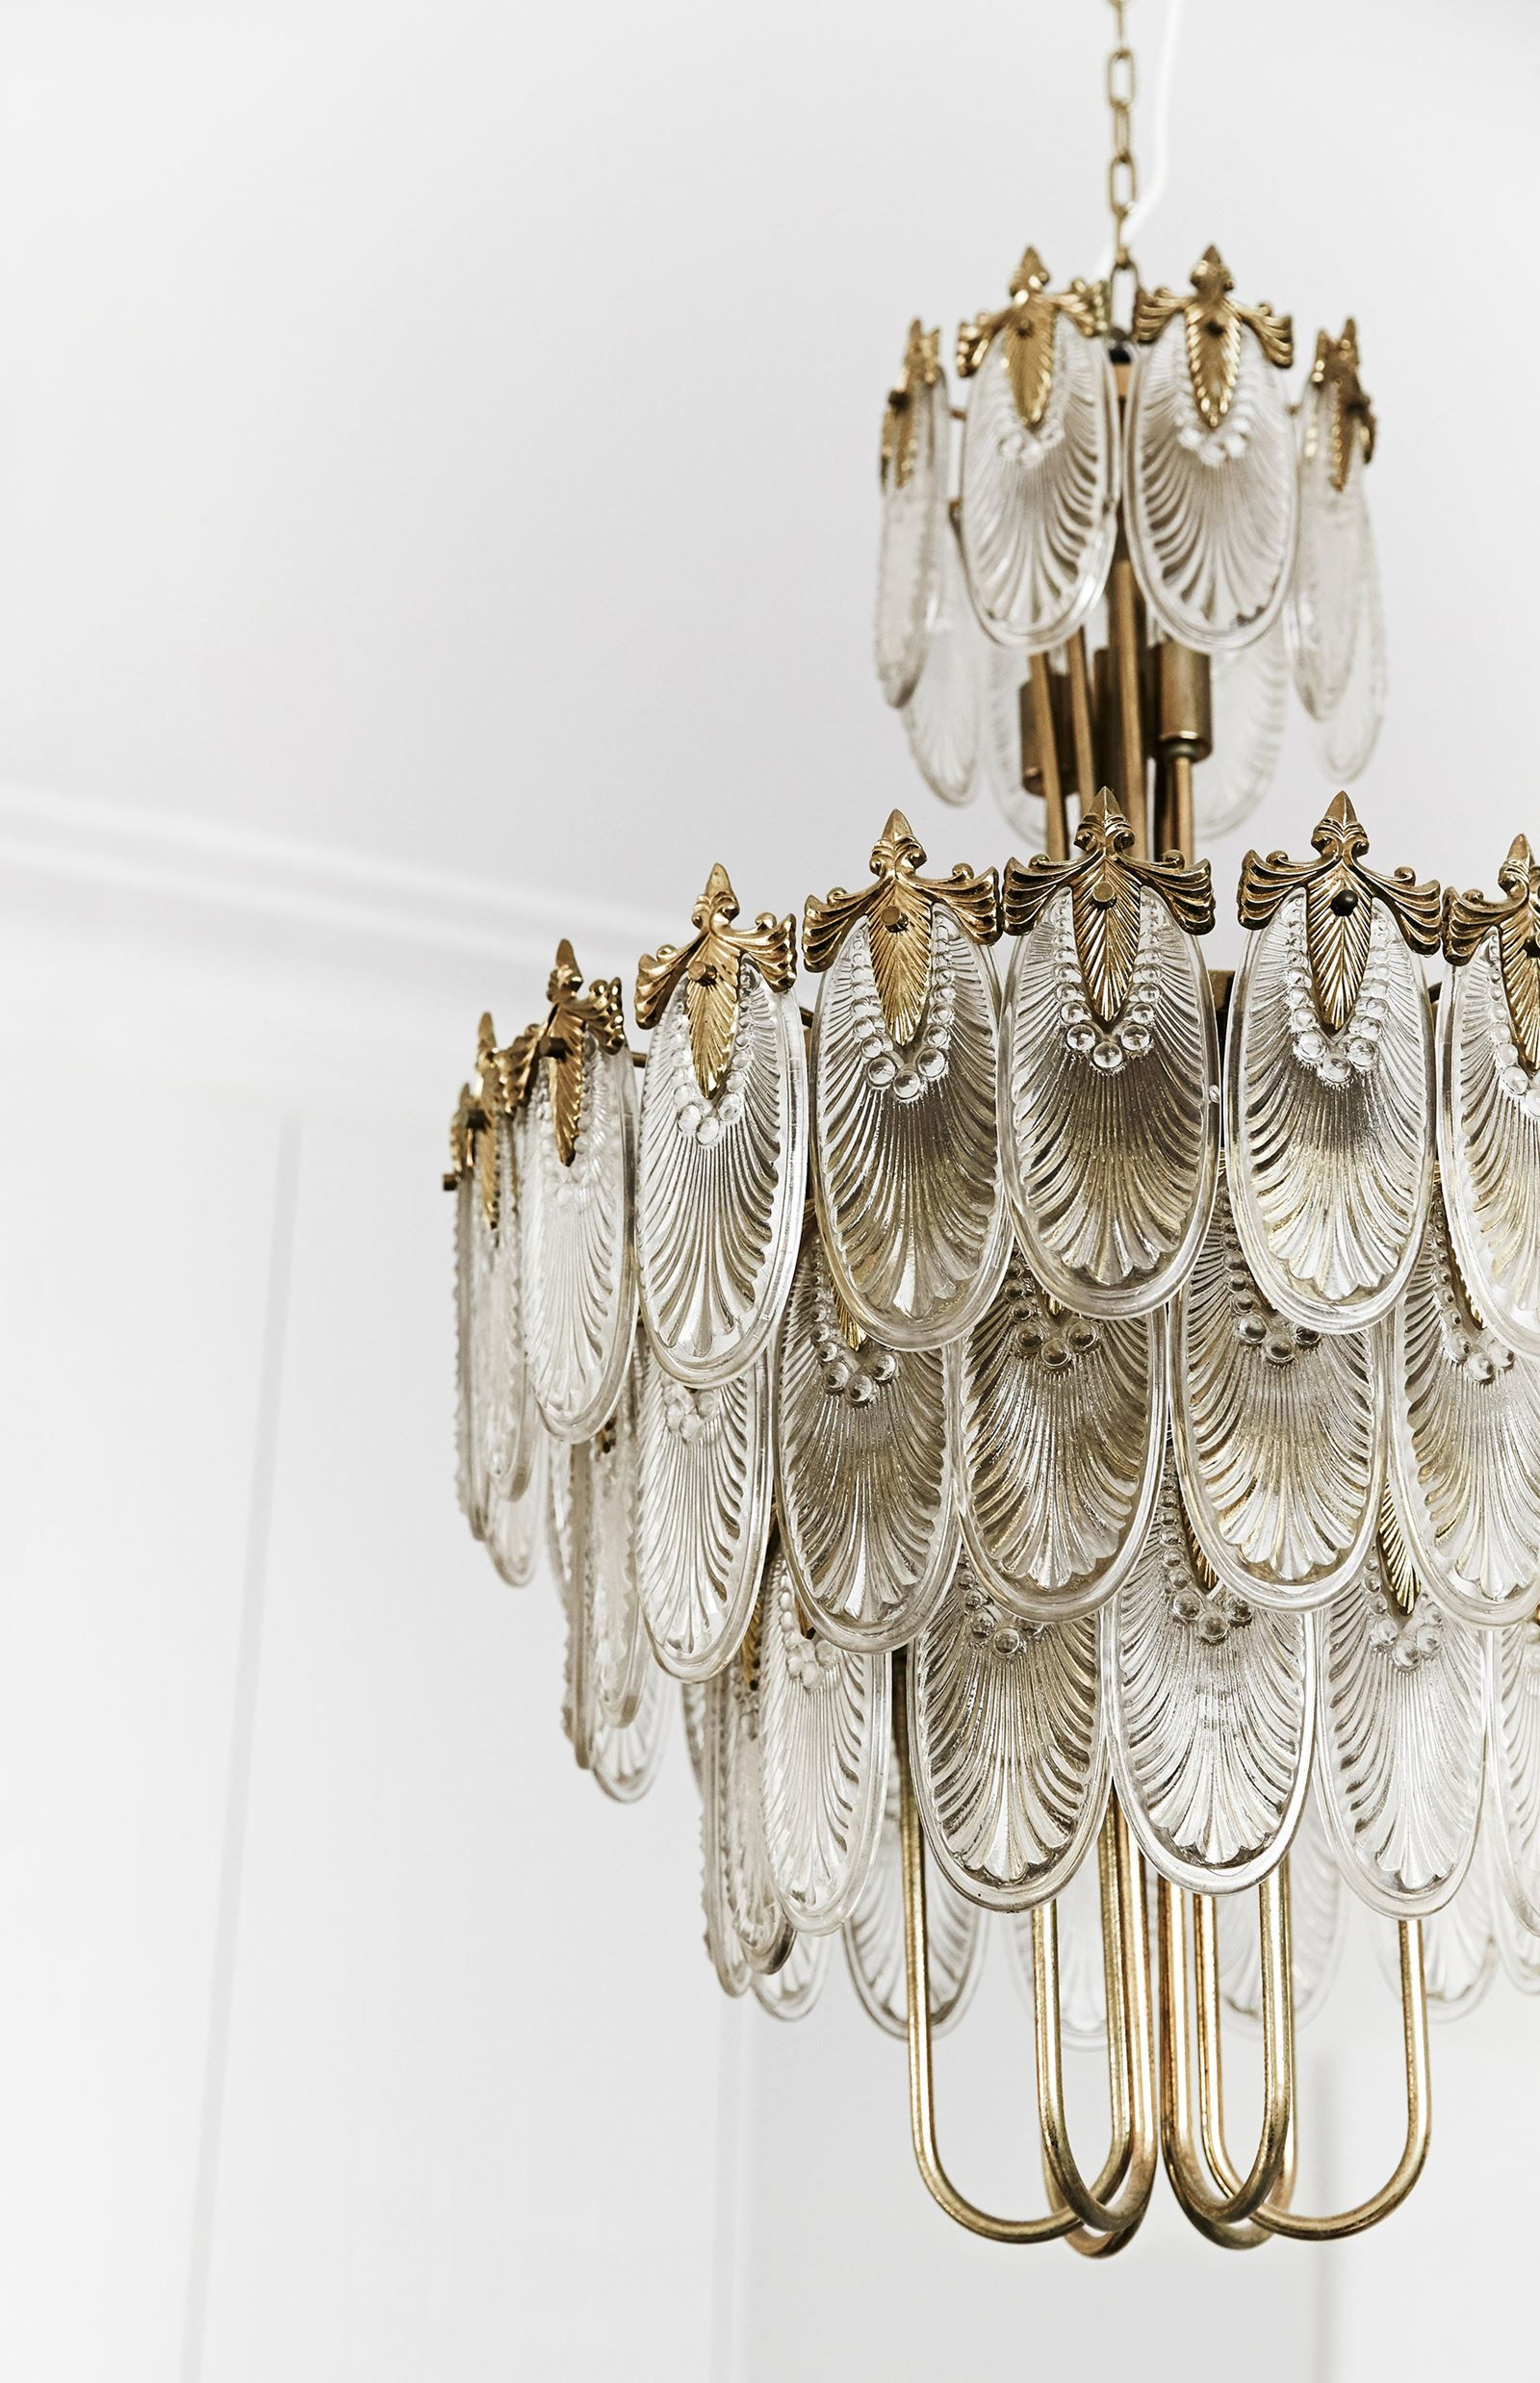 A Japanese Art Deco chandelier A Fashionable